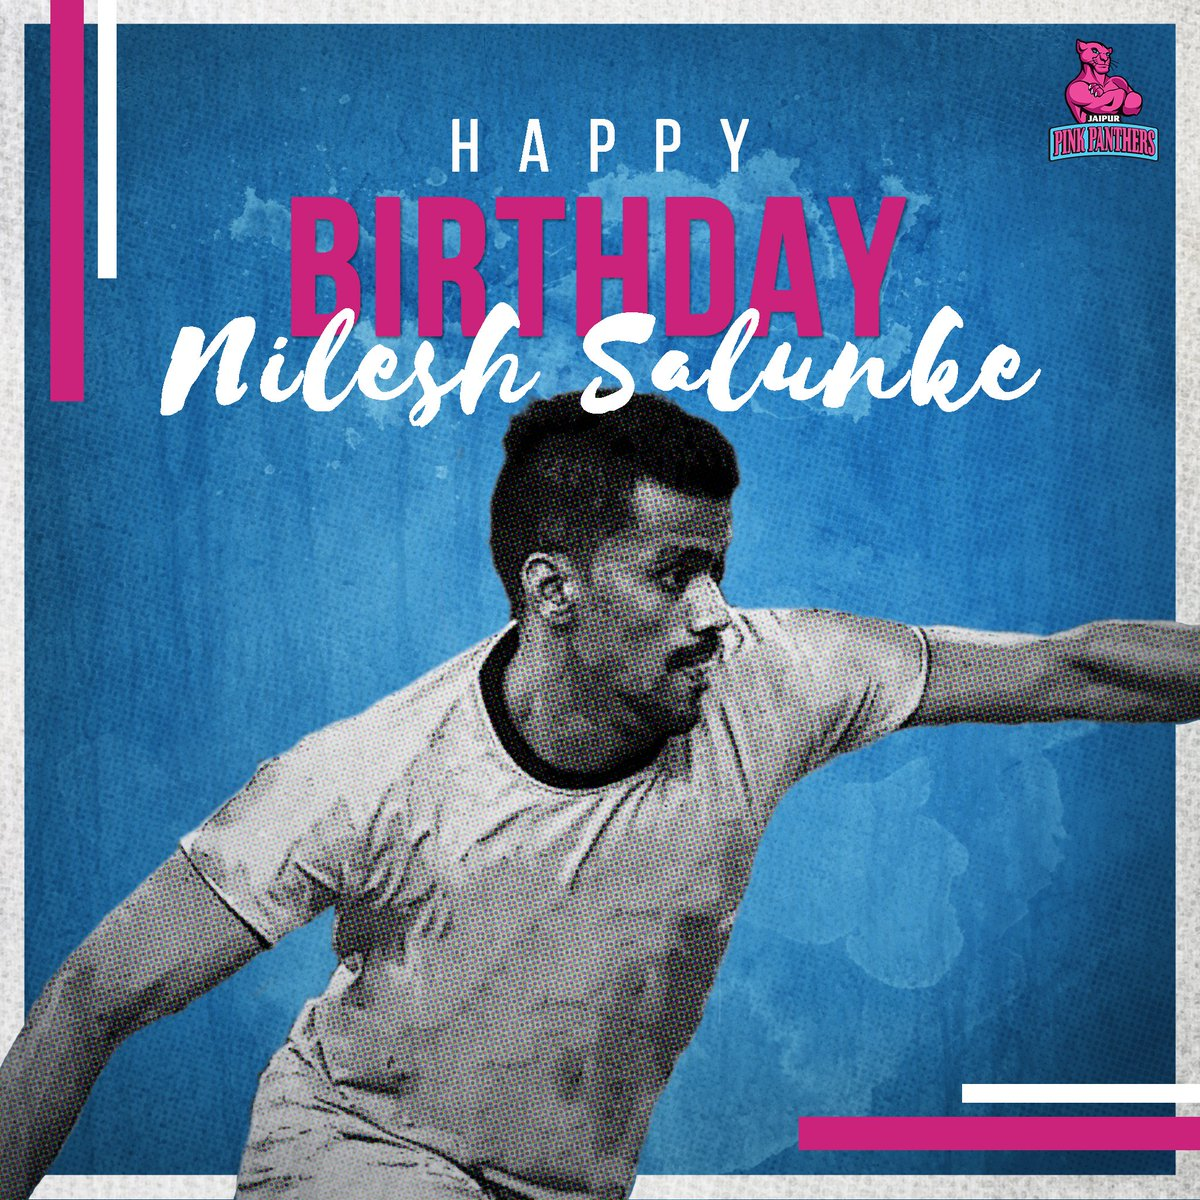 Wishing our talented raider Nilesh Salunke a very #HappyBirthday! Best wishes for the year and season ahead!  #HappyBirthdayNileshSalunke #NileshSalunke #PantherSquad #Panthers #TopCats #JaipurPinkPanthers #JPP #Jaipur #Kabaddi #ProKabaddi